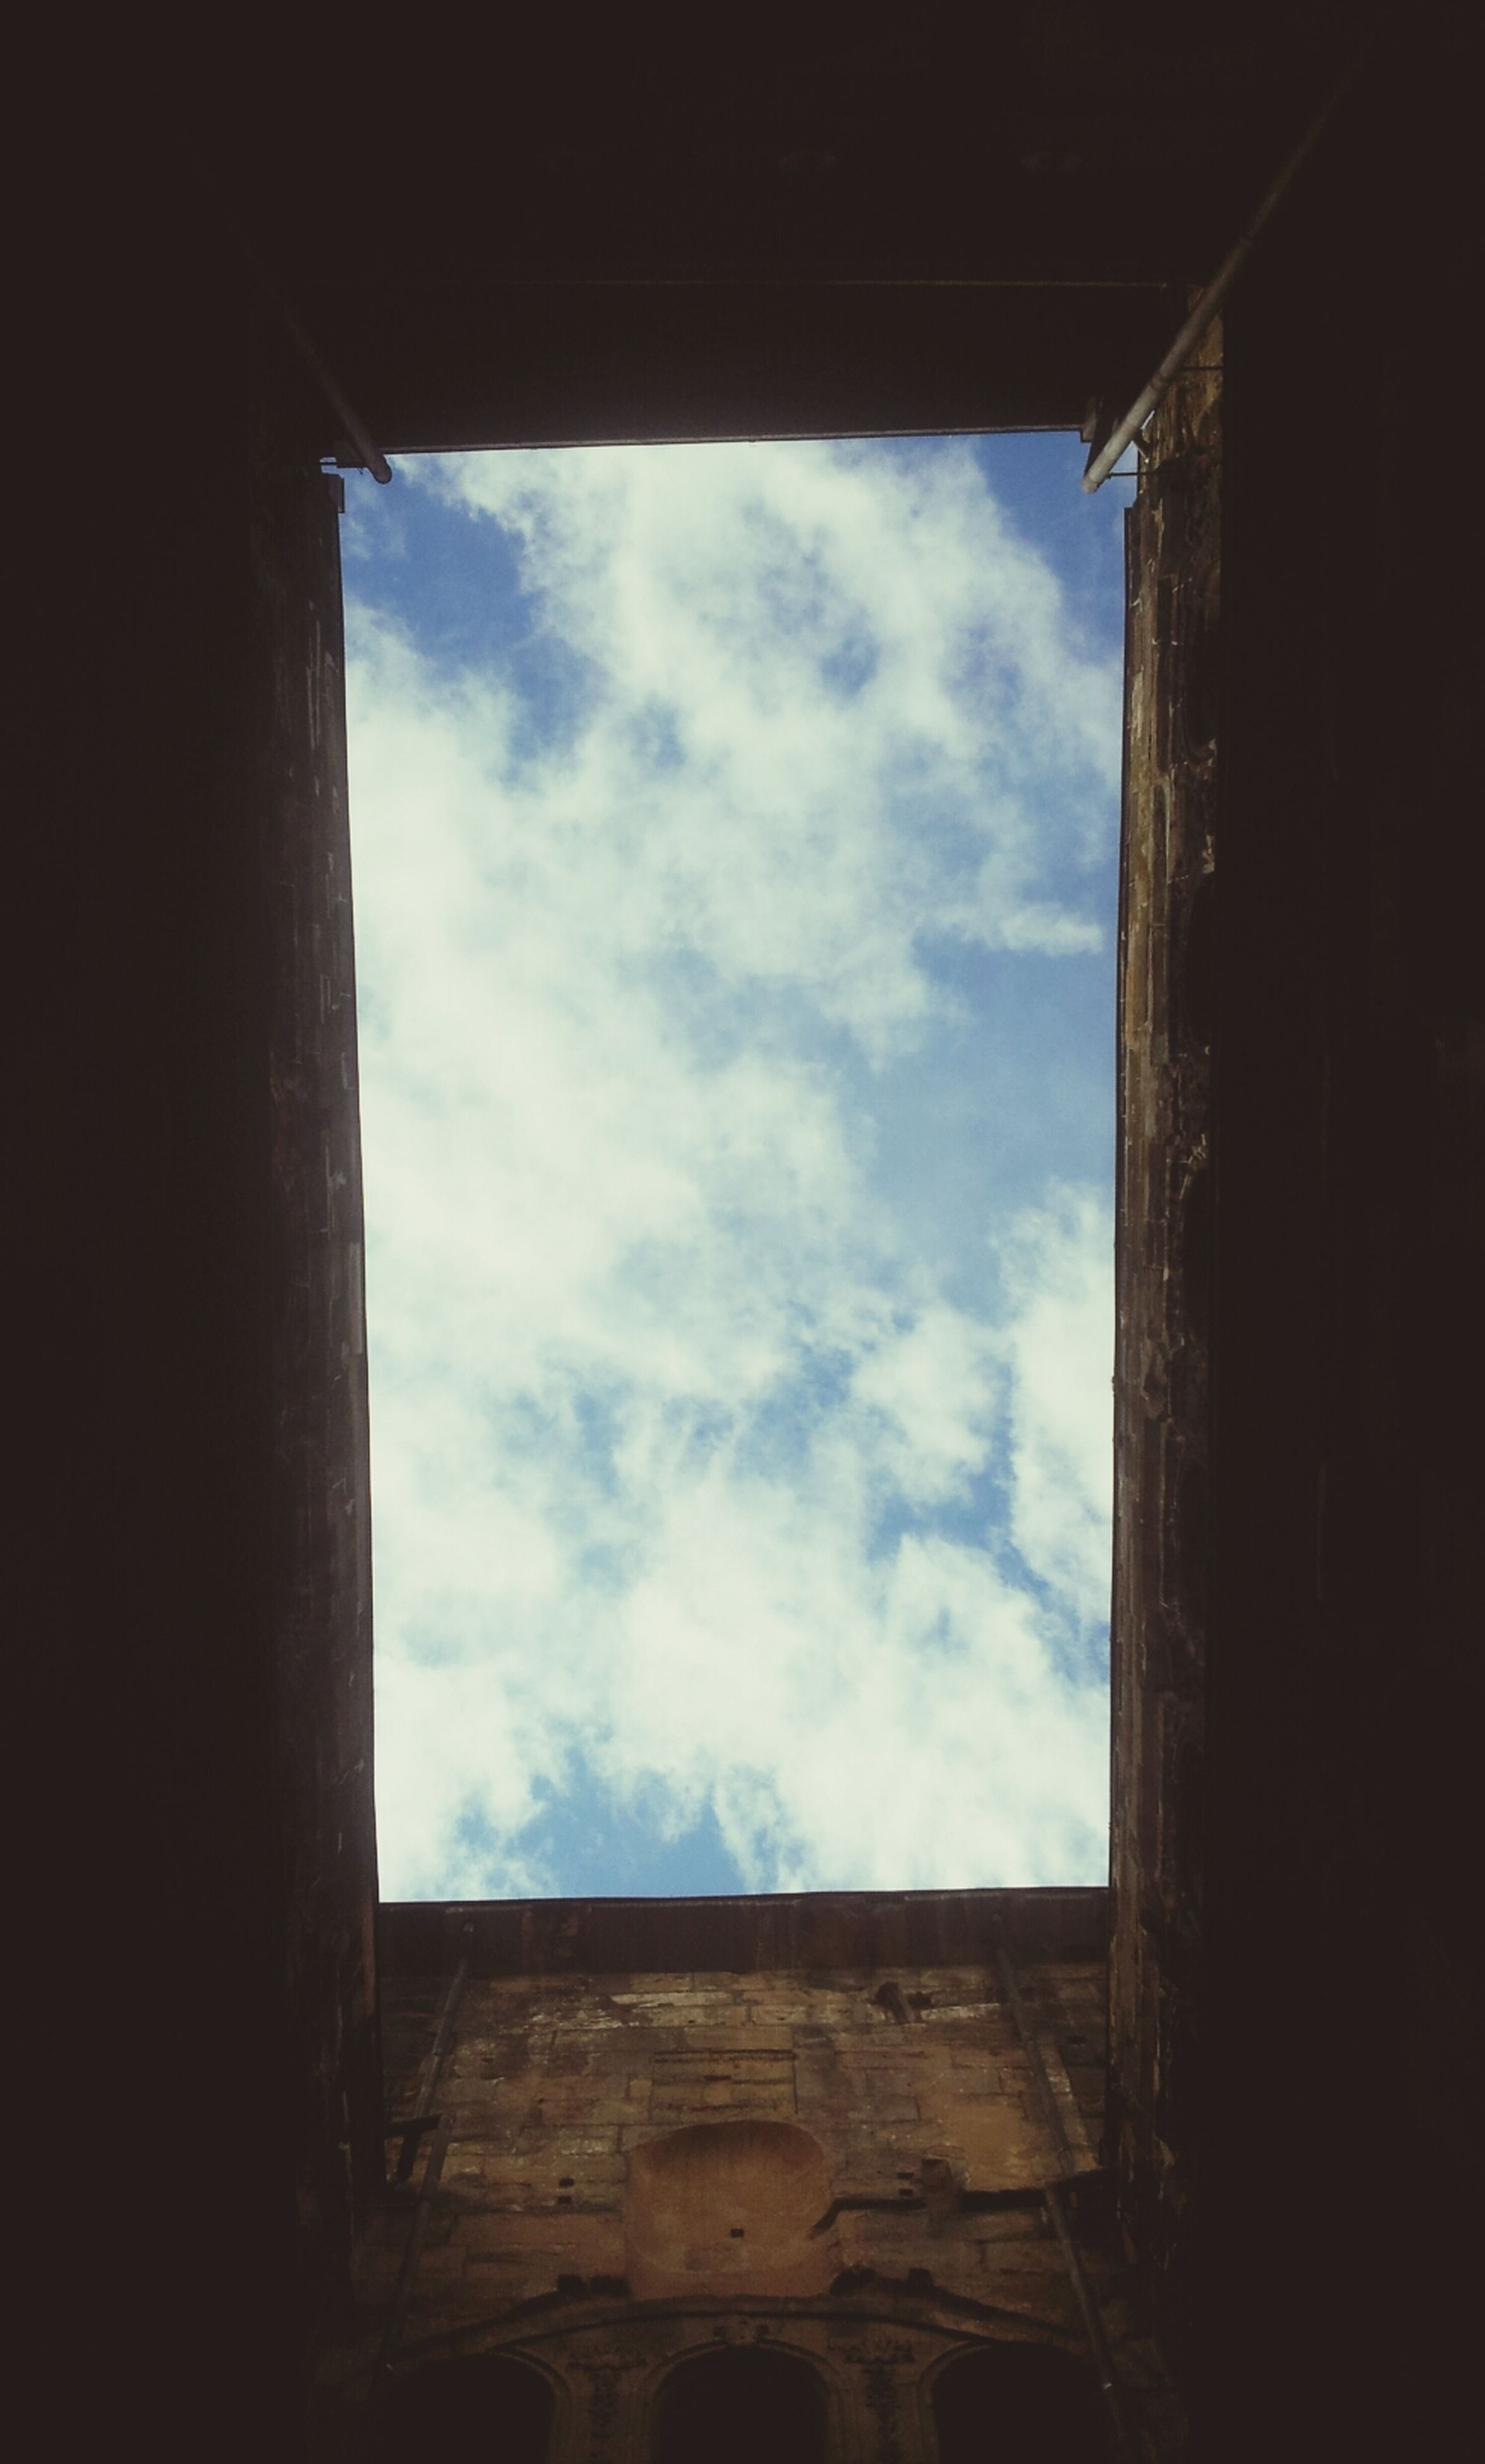 window, sky, cloud - sky, low angle view, day, architecture, no people, built structure, indoors, tree, nature